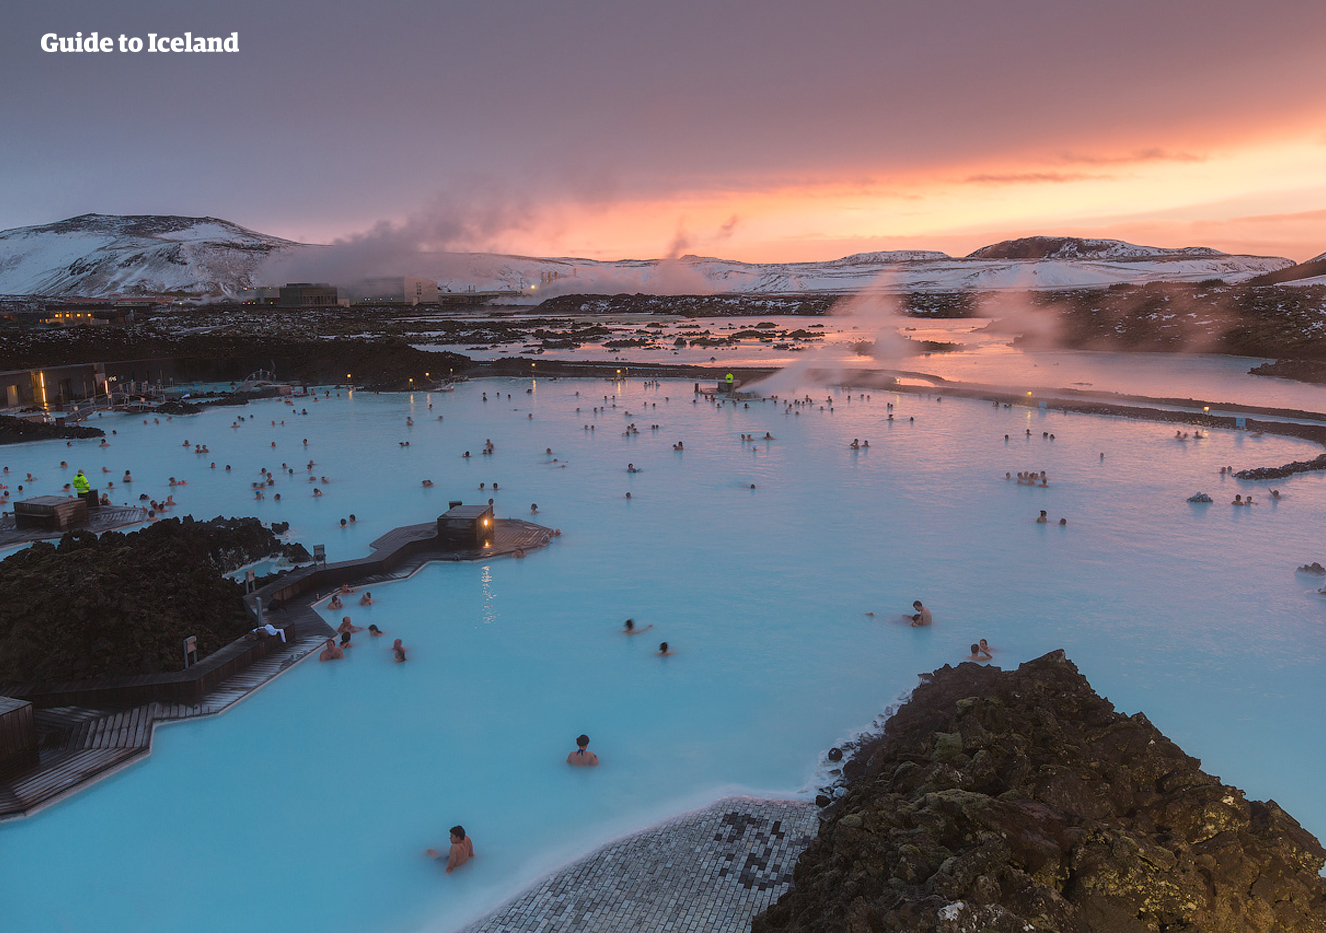 The Blue Lagoon is a wonderful place to unravel stress in Iceland.